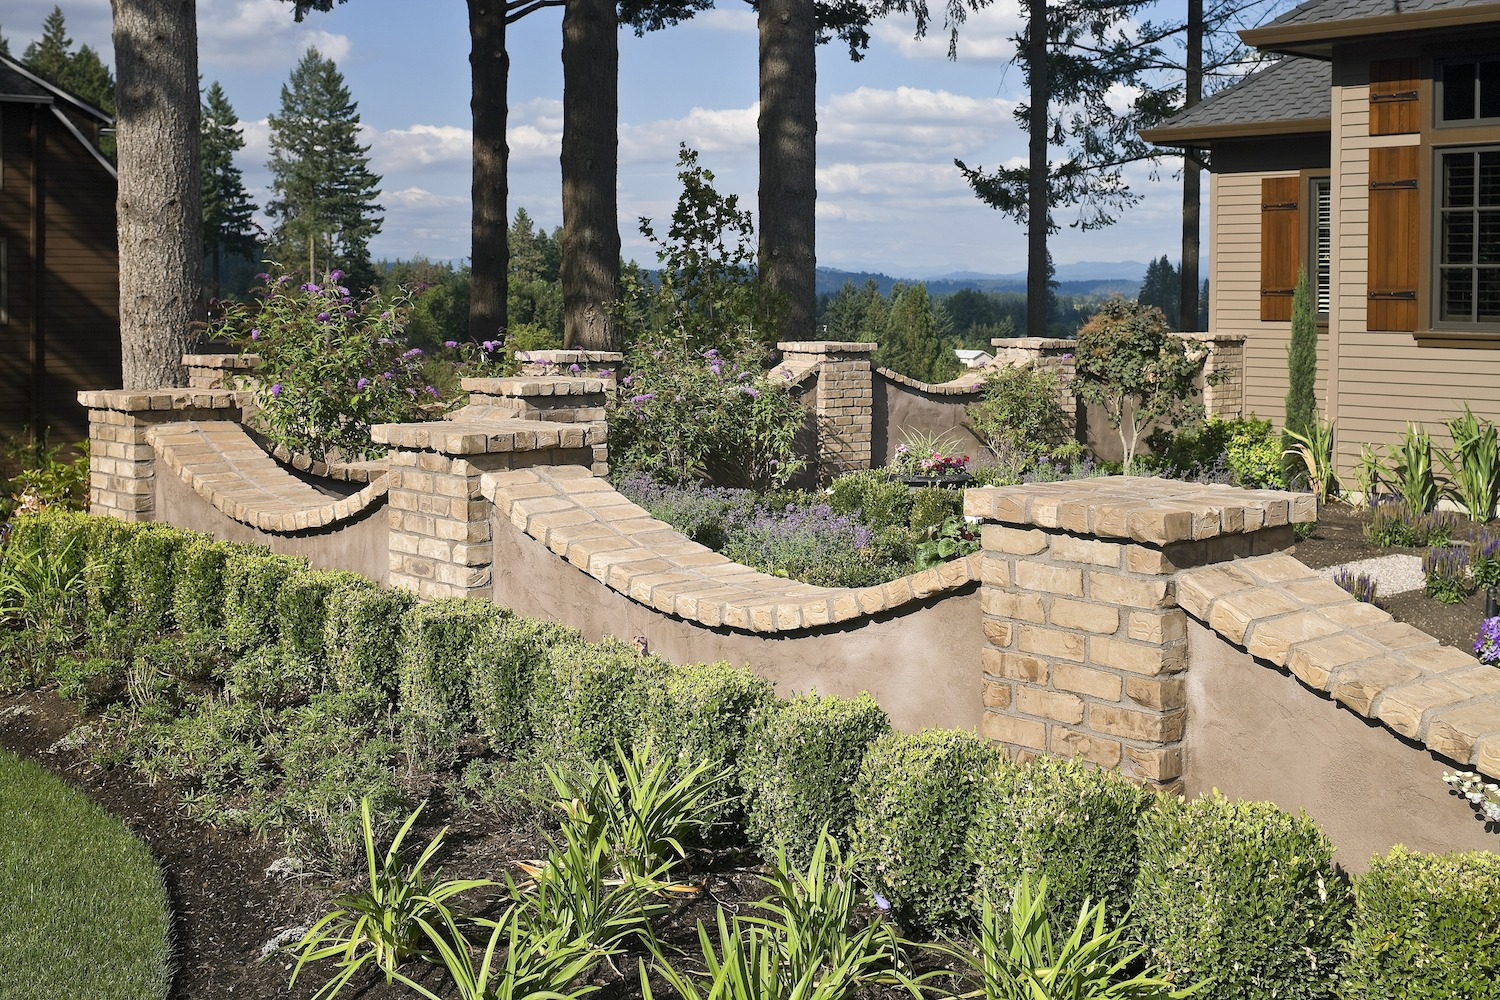 How Much Should You Spend On Landscaping Every Spring